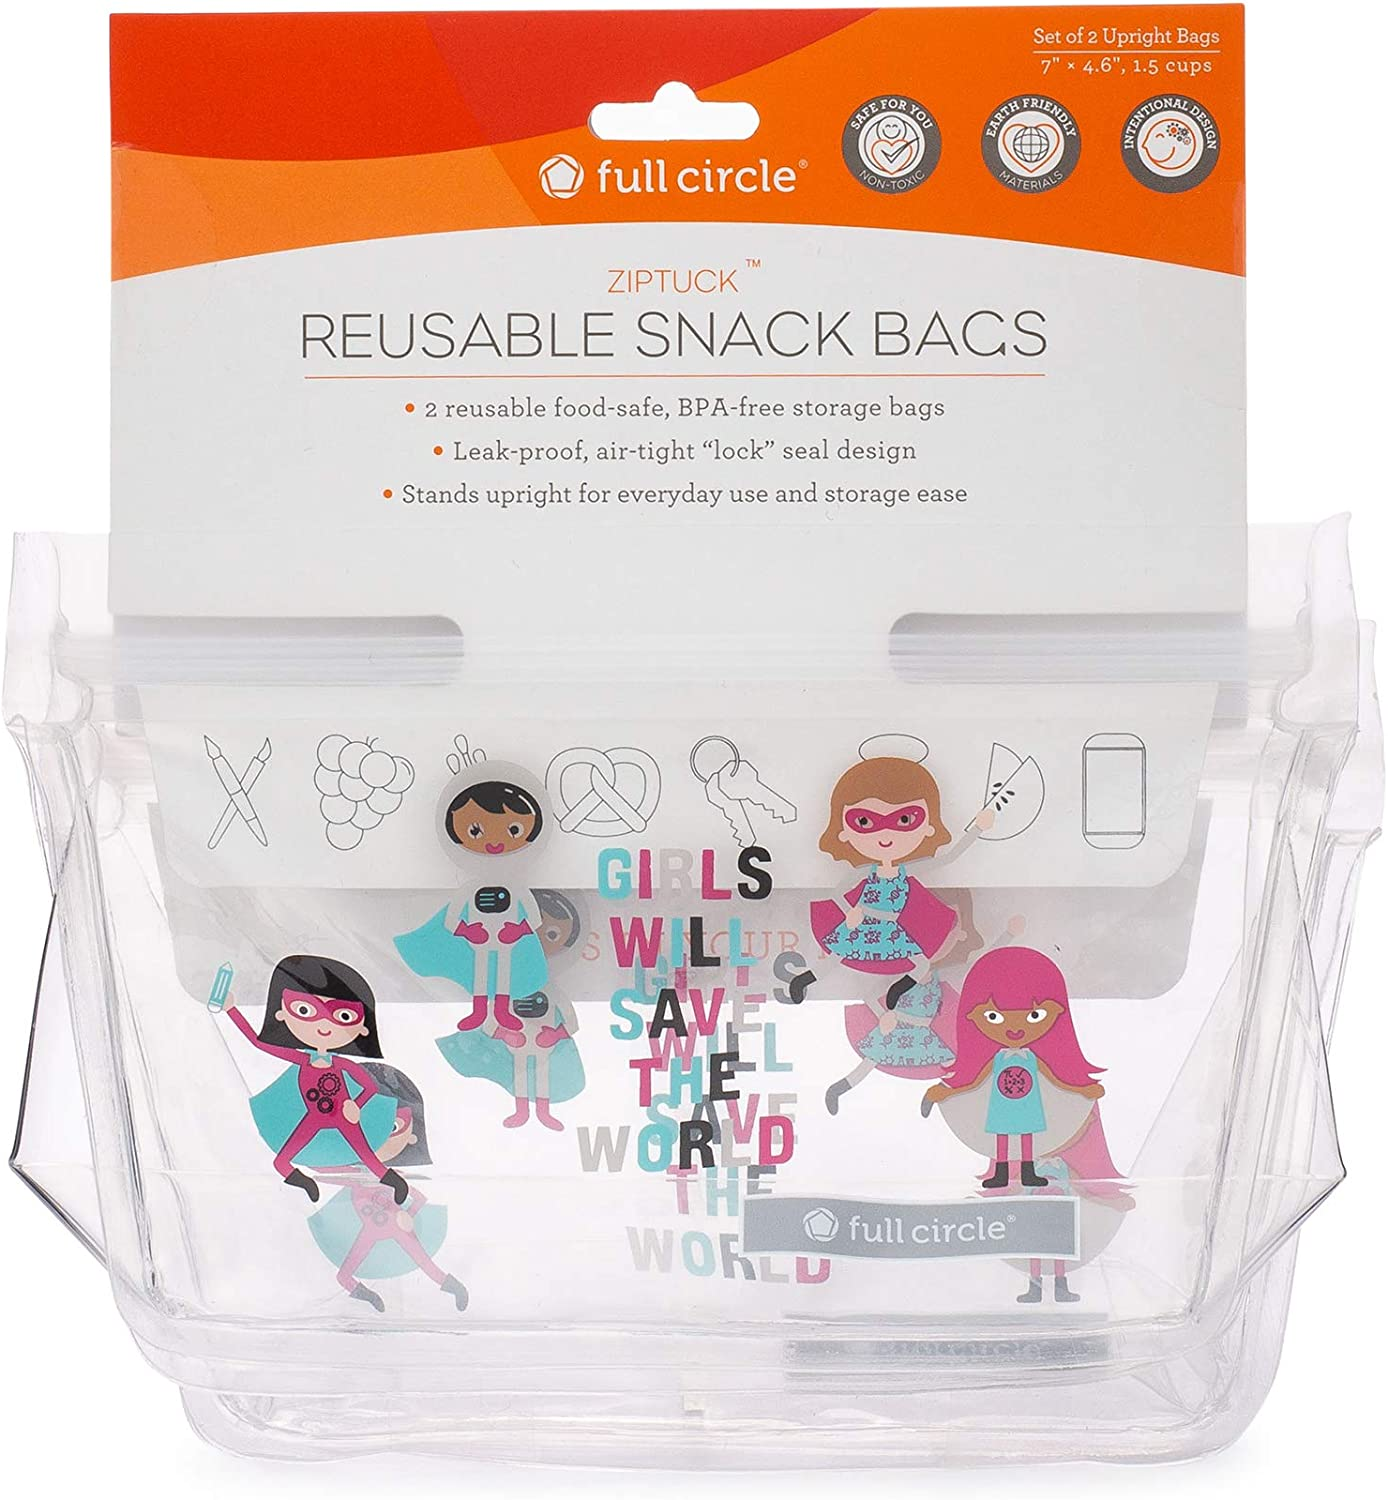 Full Circle ZipTuck Kids Reusable Plastic Food and Storage Bag, Snack Set of 2 with Gusset Base, Girl Heroes